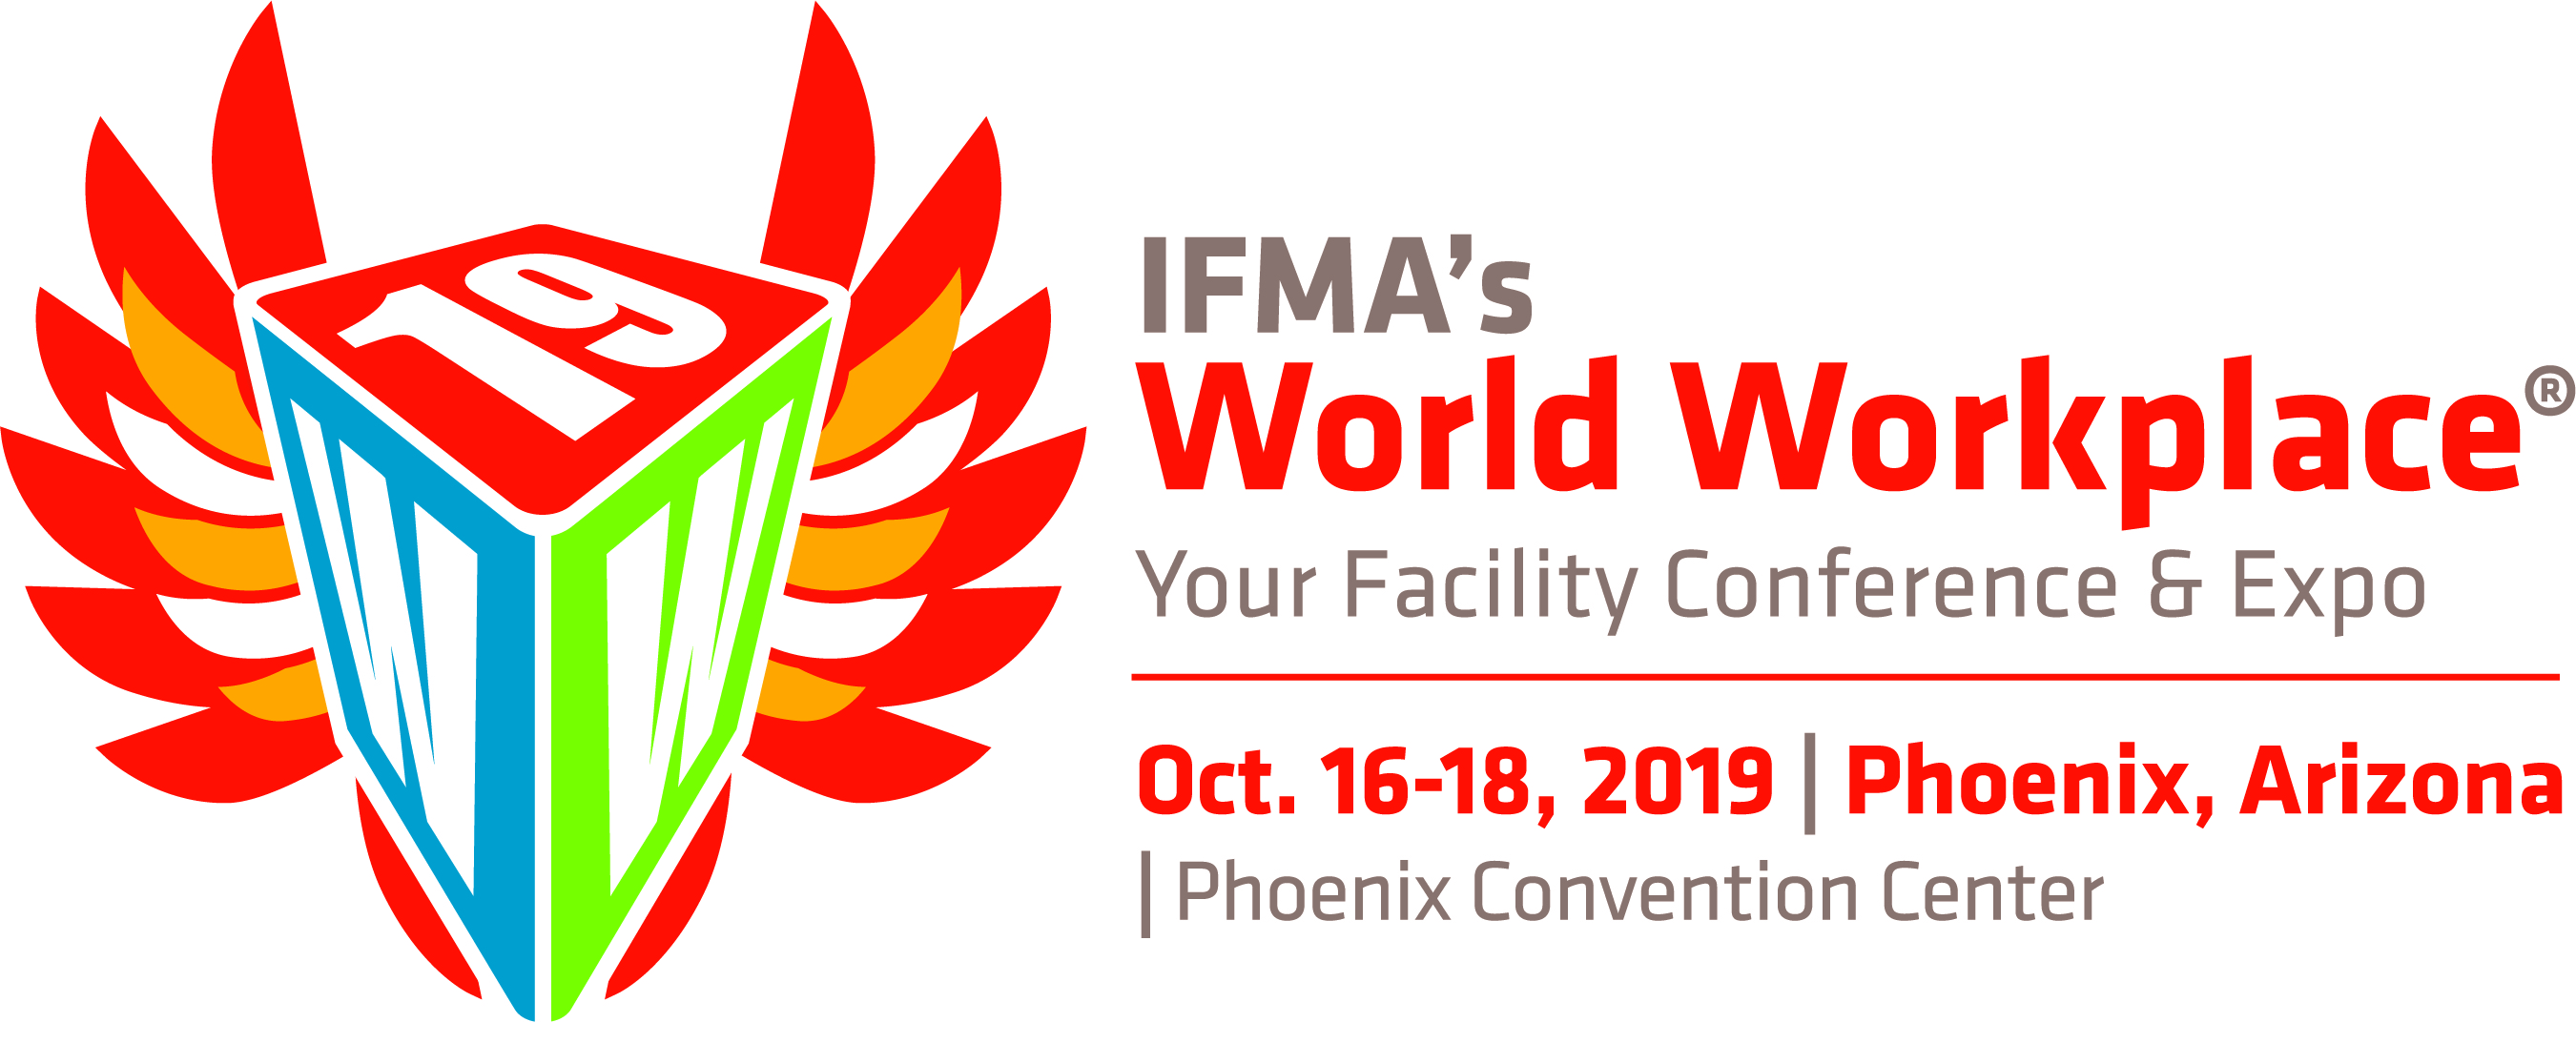 IFMA's World Workplace 2019